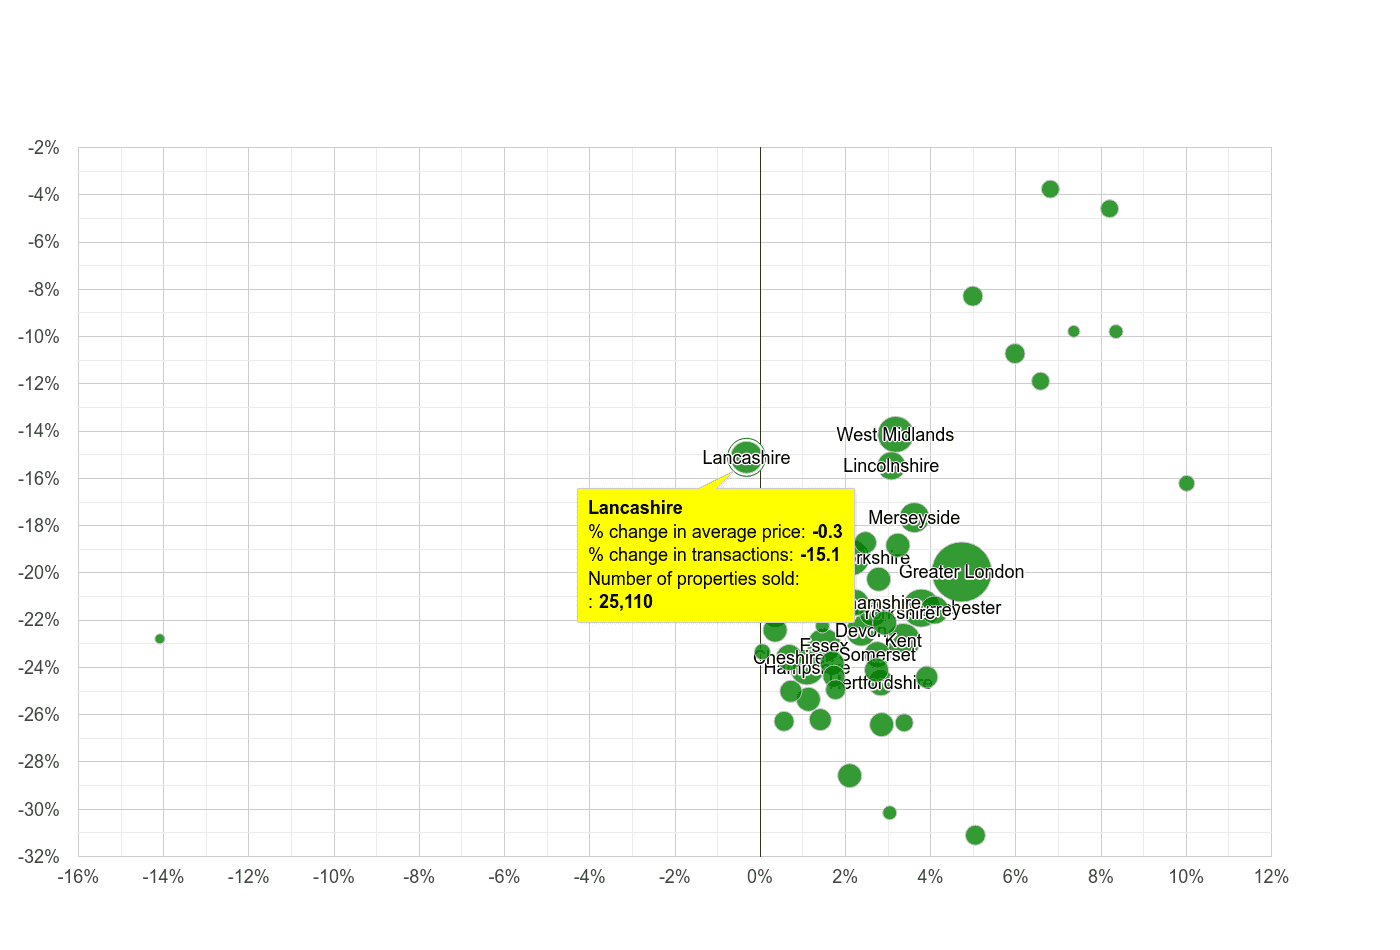 Lancashire property price and sales volume change relative to other counties